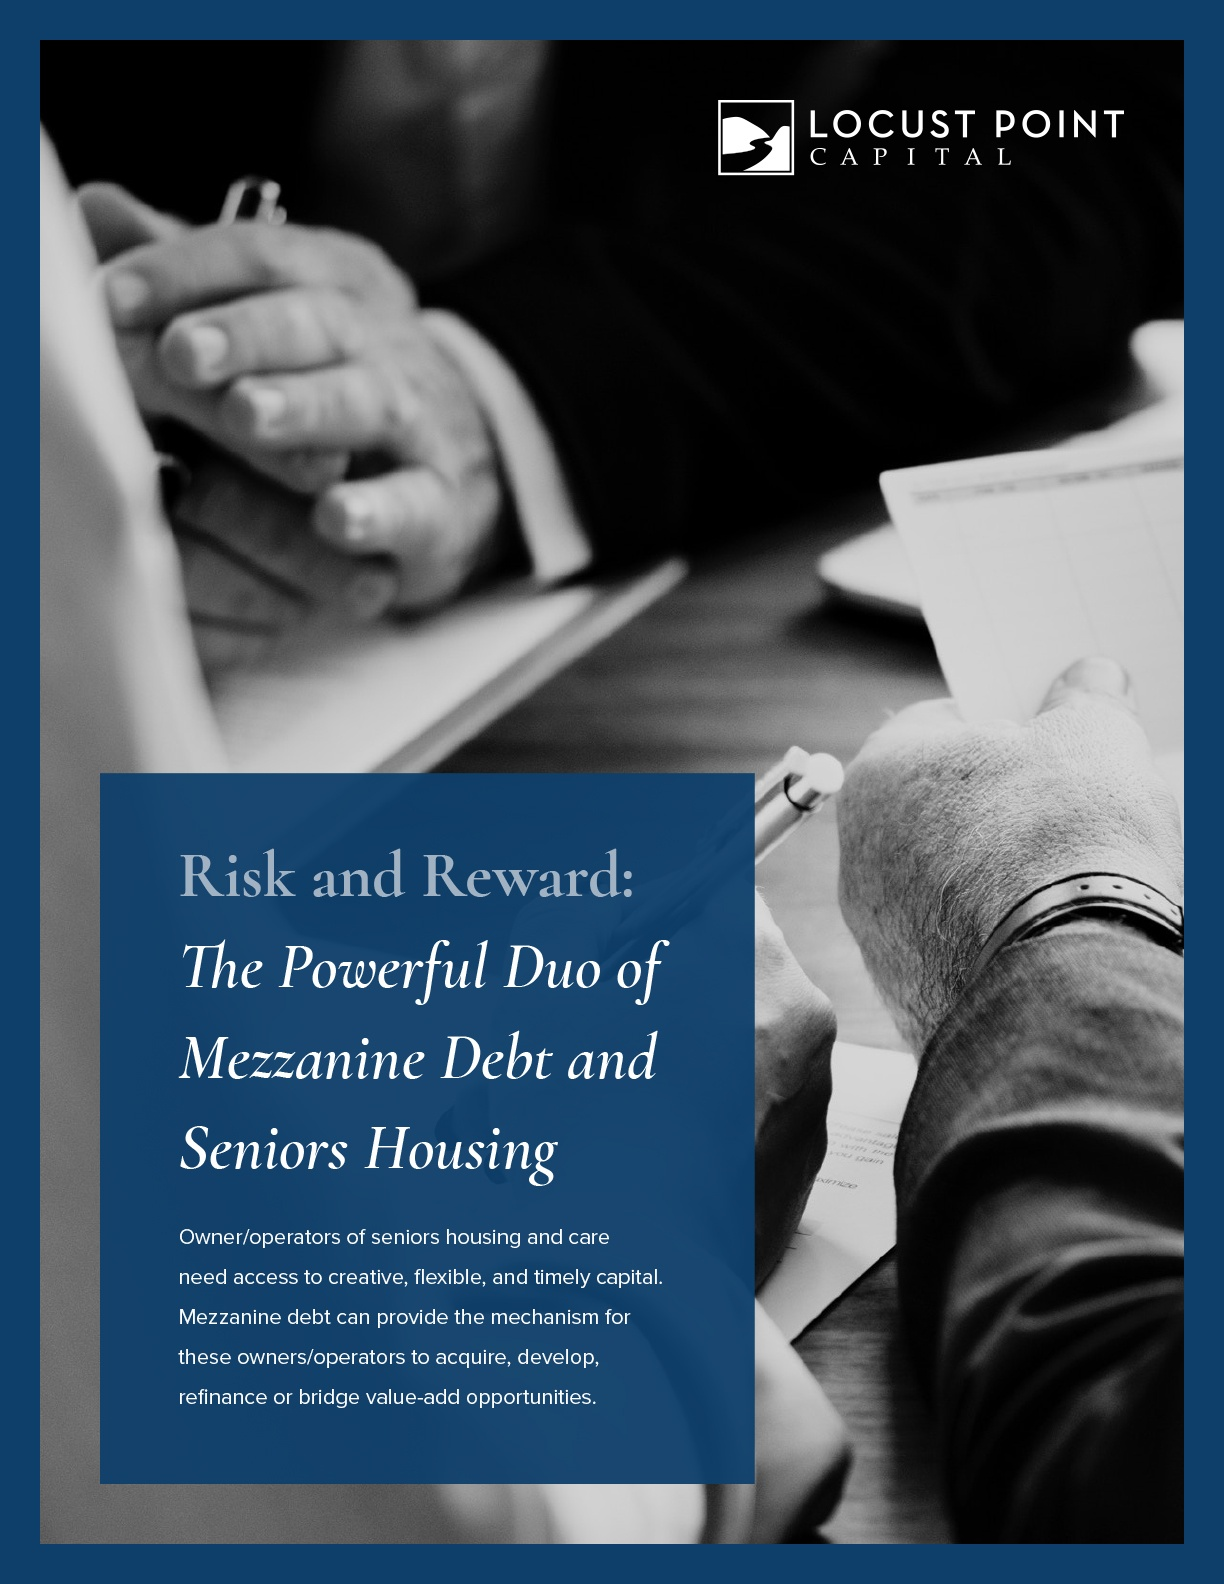 Risk and Reward: The Powerful Duo of Mezzanine Debt and Seniors Housing